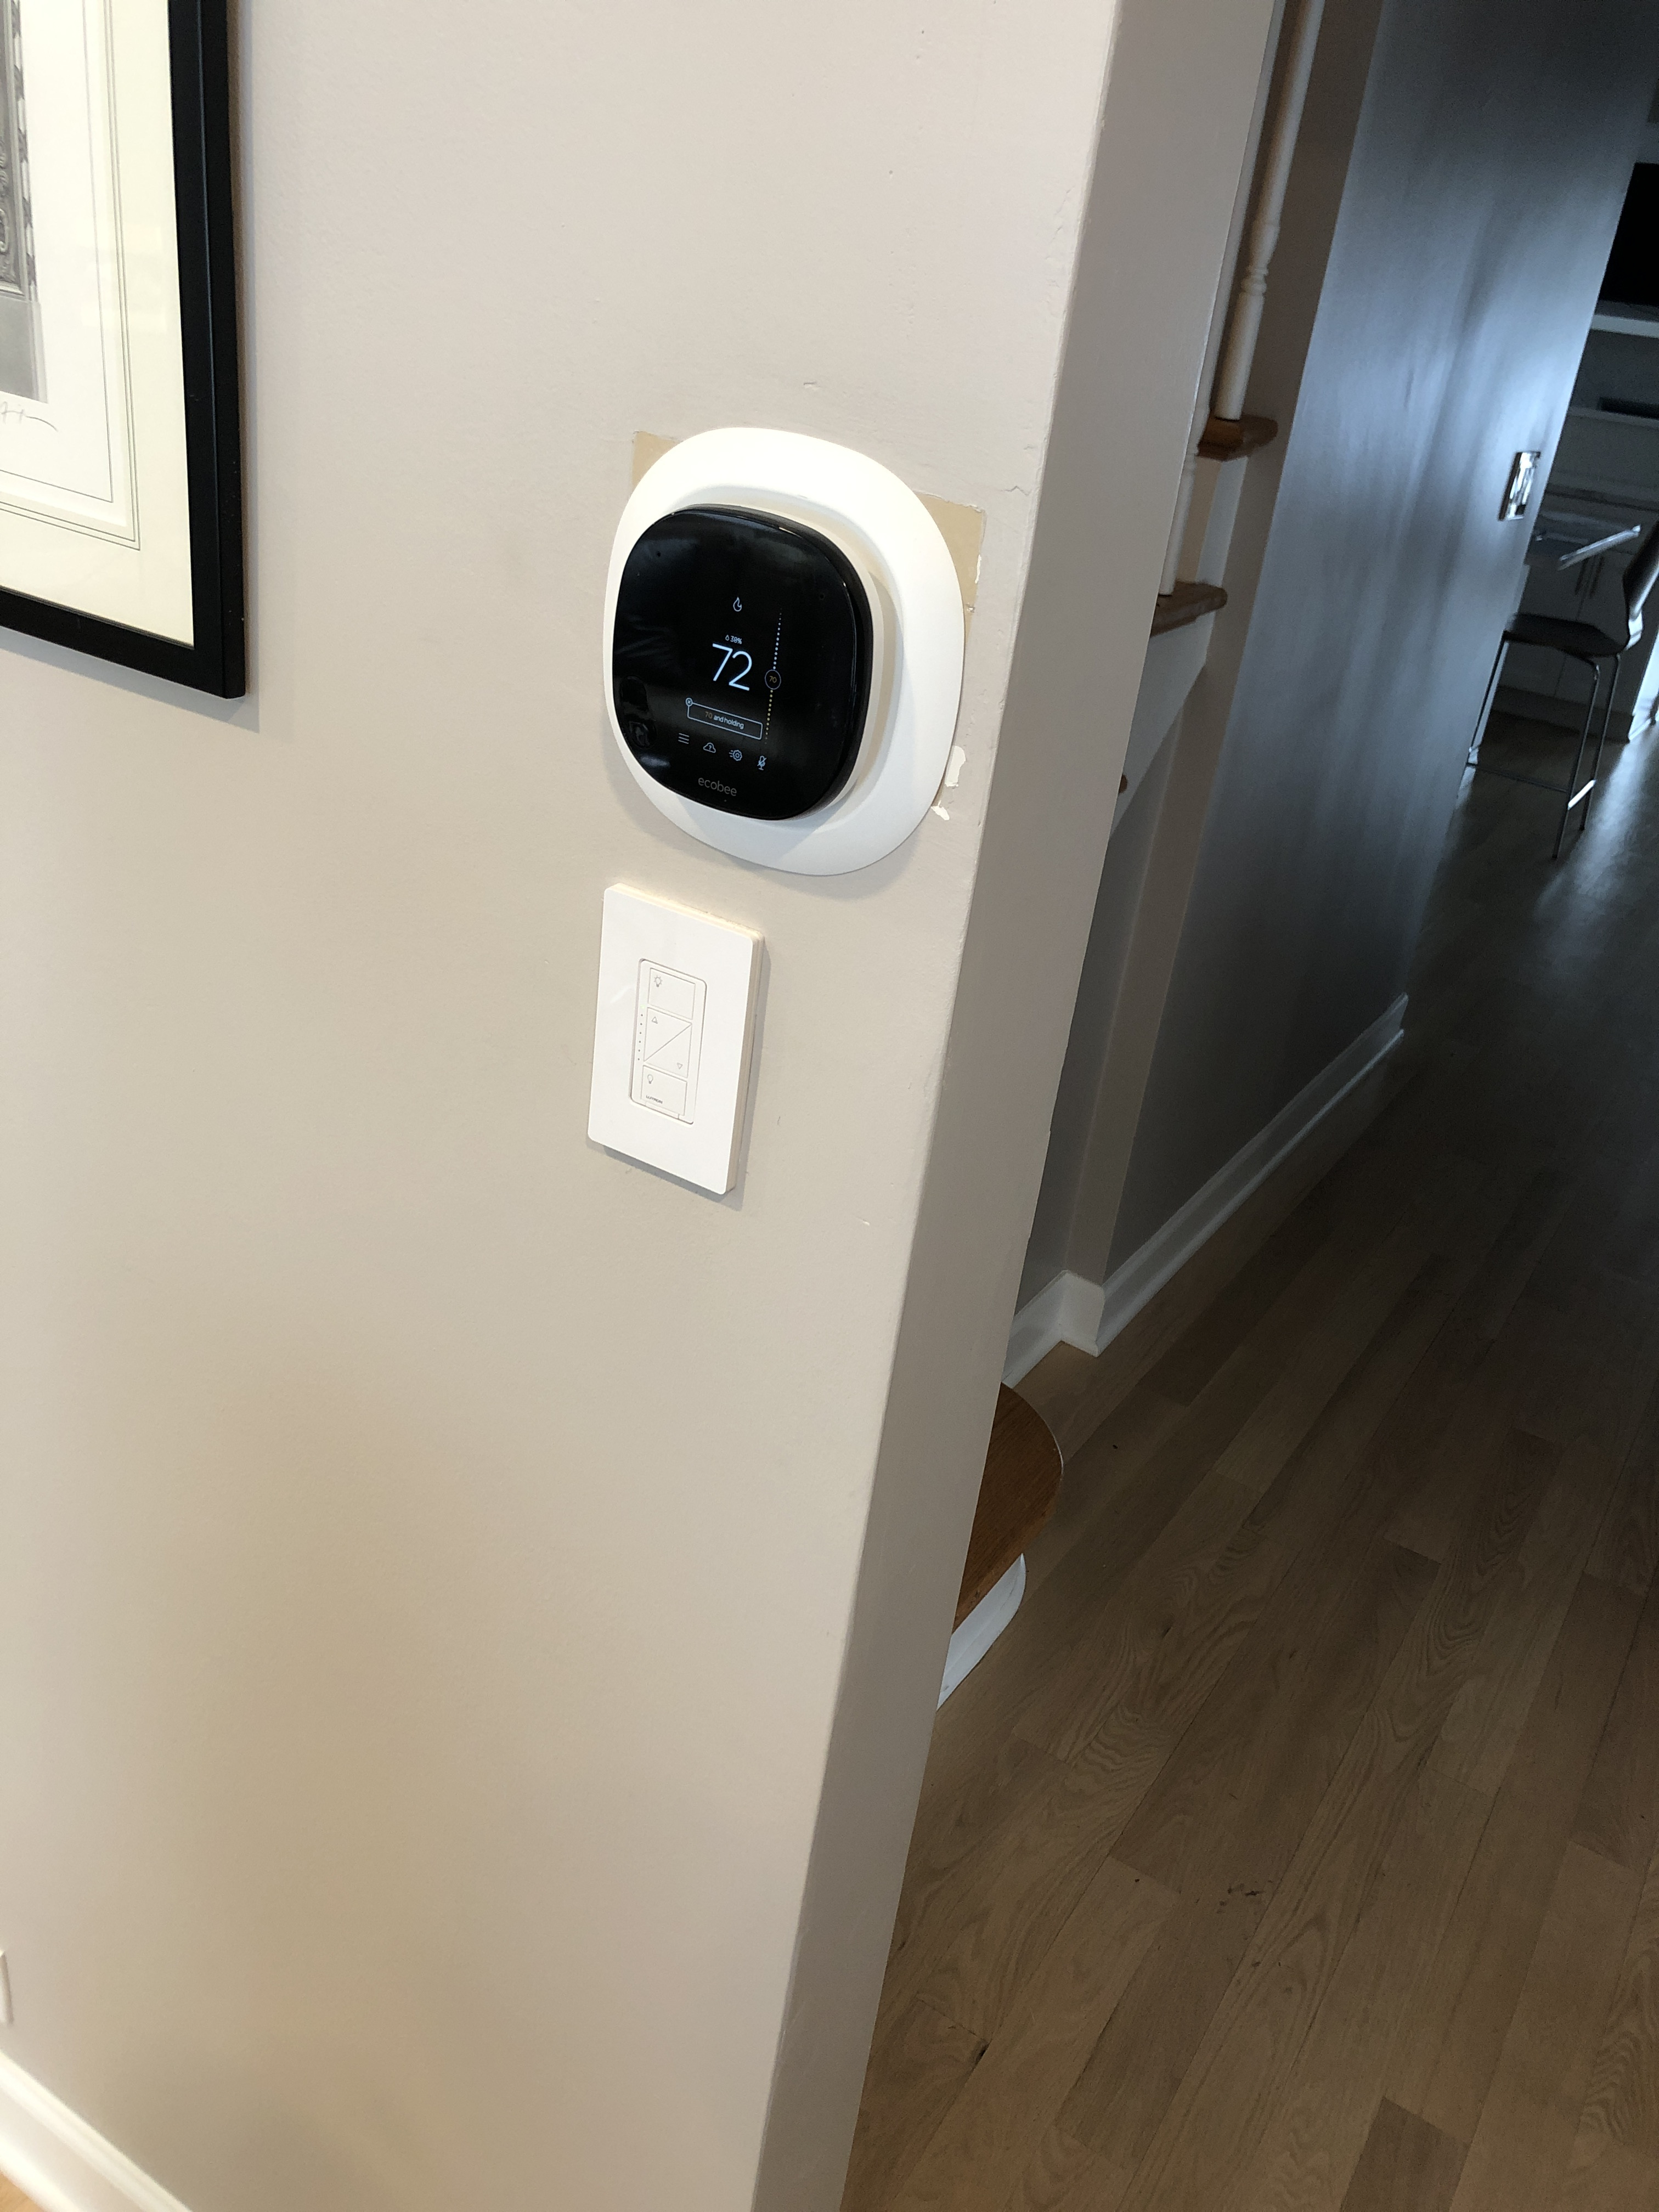 Arrived on call to install customer eco-bee thermostat. Disconnected old thermostat and reworded new stat. Had customer program and cycled with furnace to ensure everything is functioning normally.